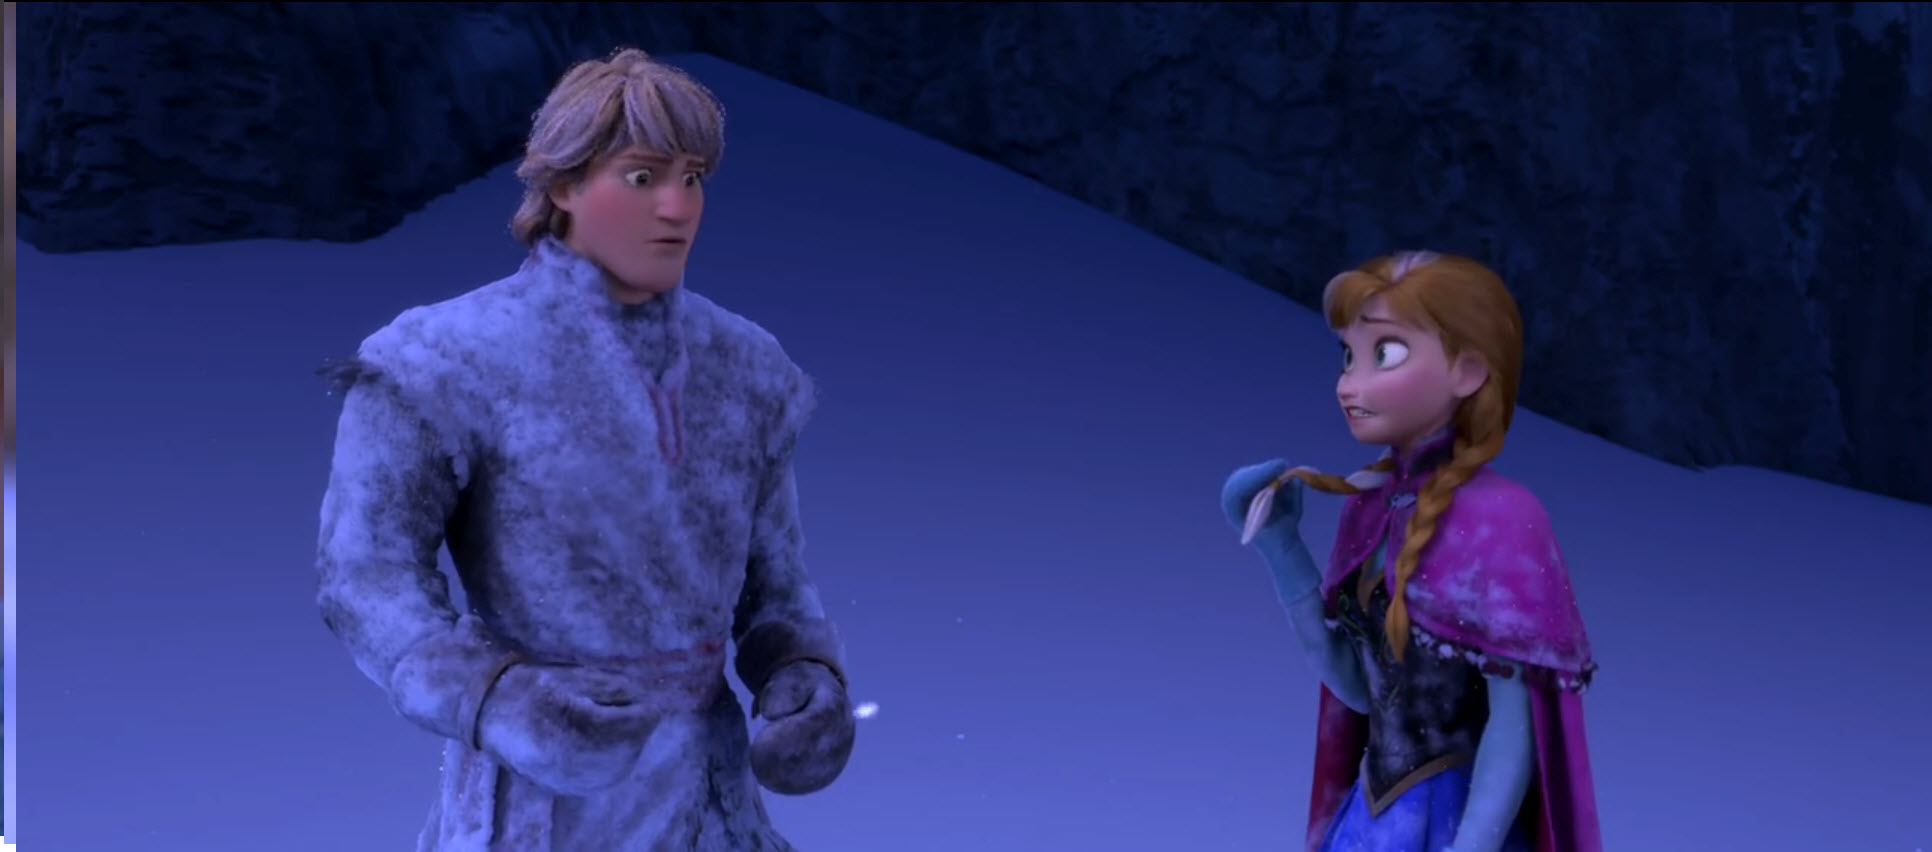 Anna Talking About Han's Foot Size in Frozen